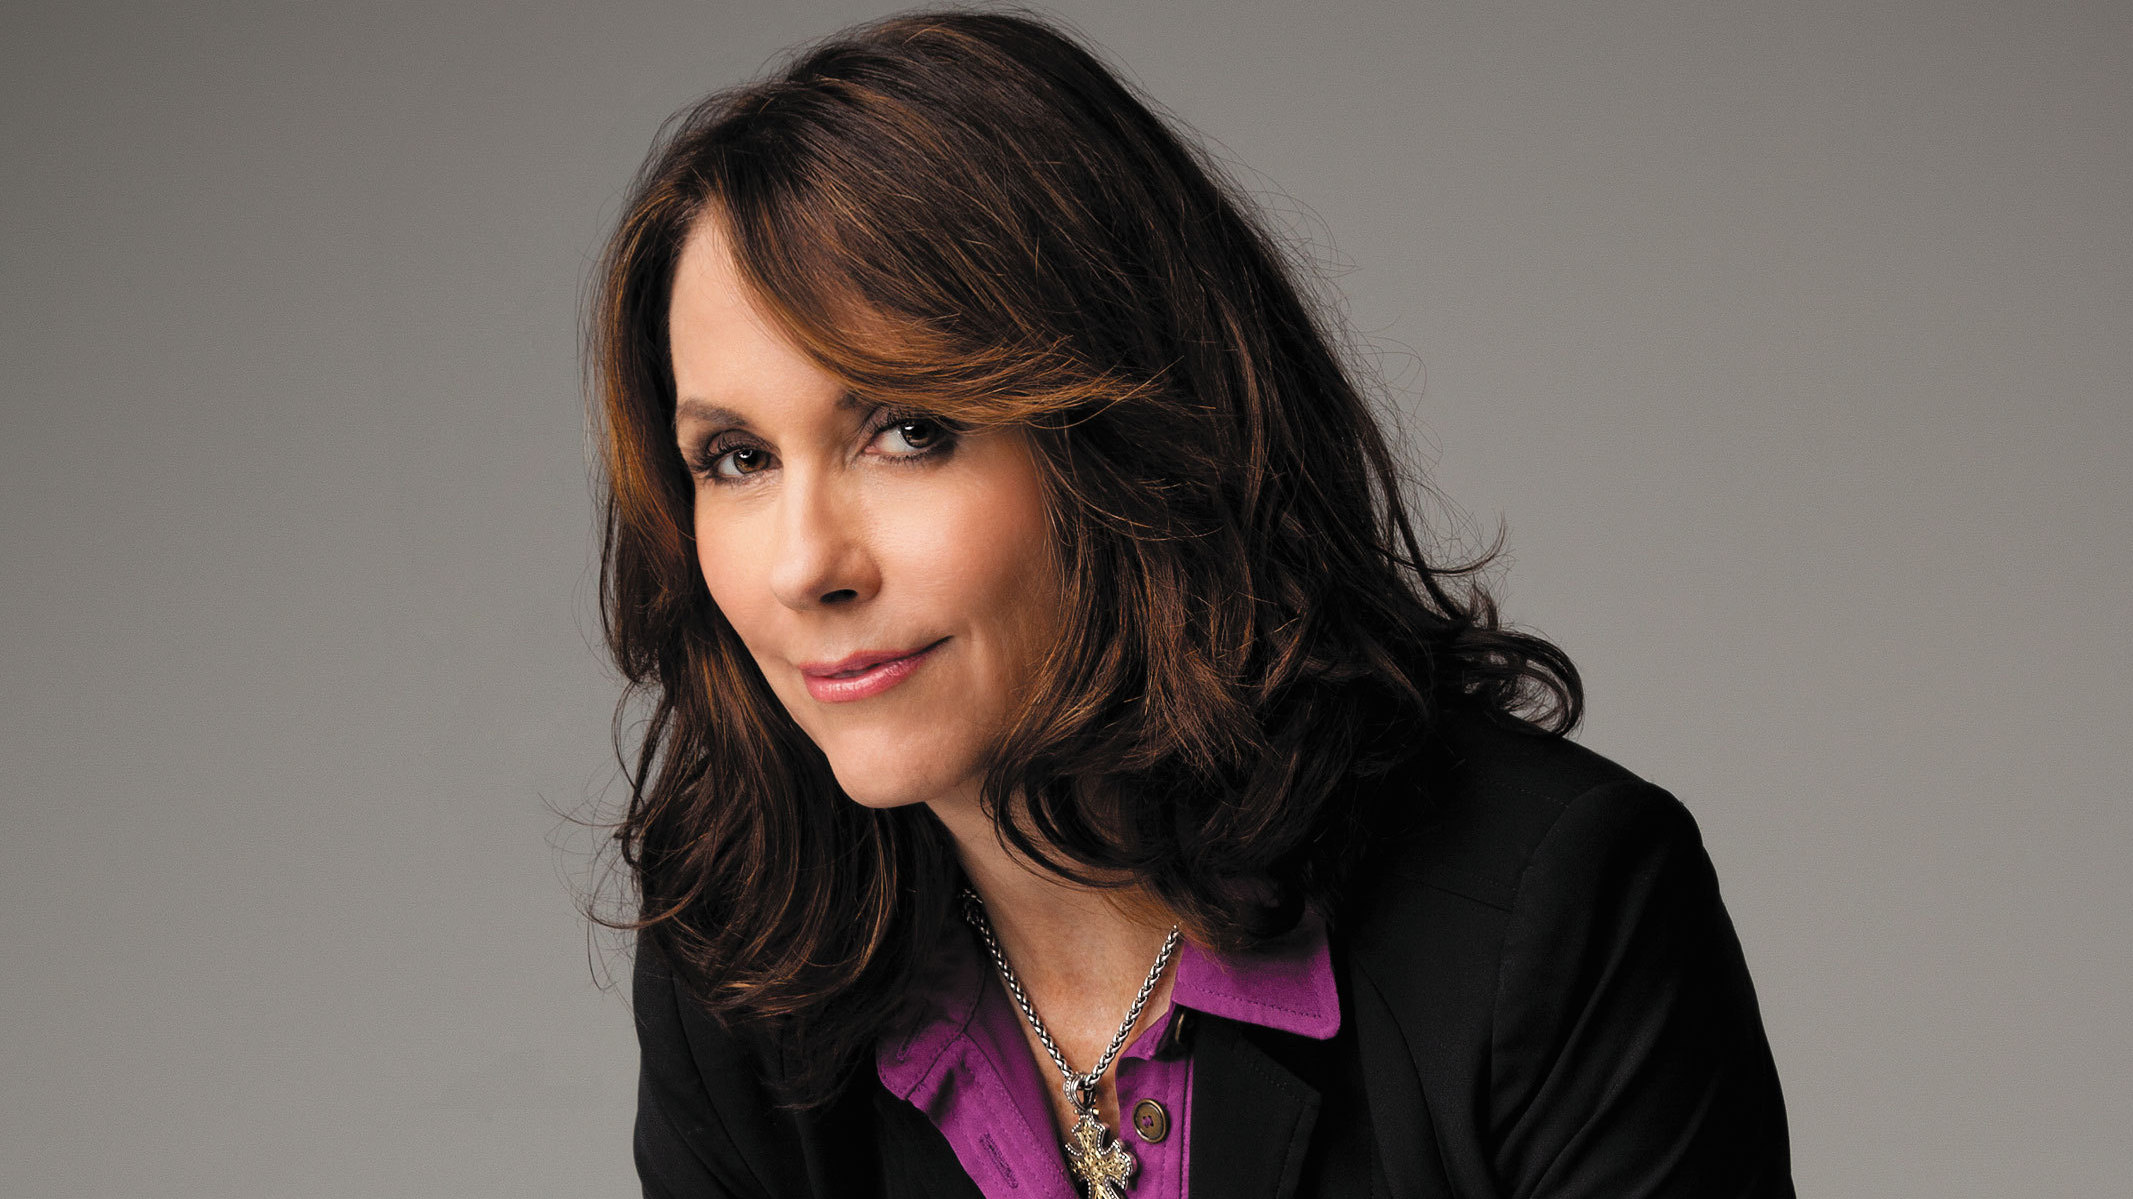 Weekend Agenda: Mary Karr On The Art of Memoir and her Texas Road ...